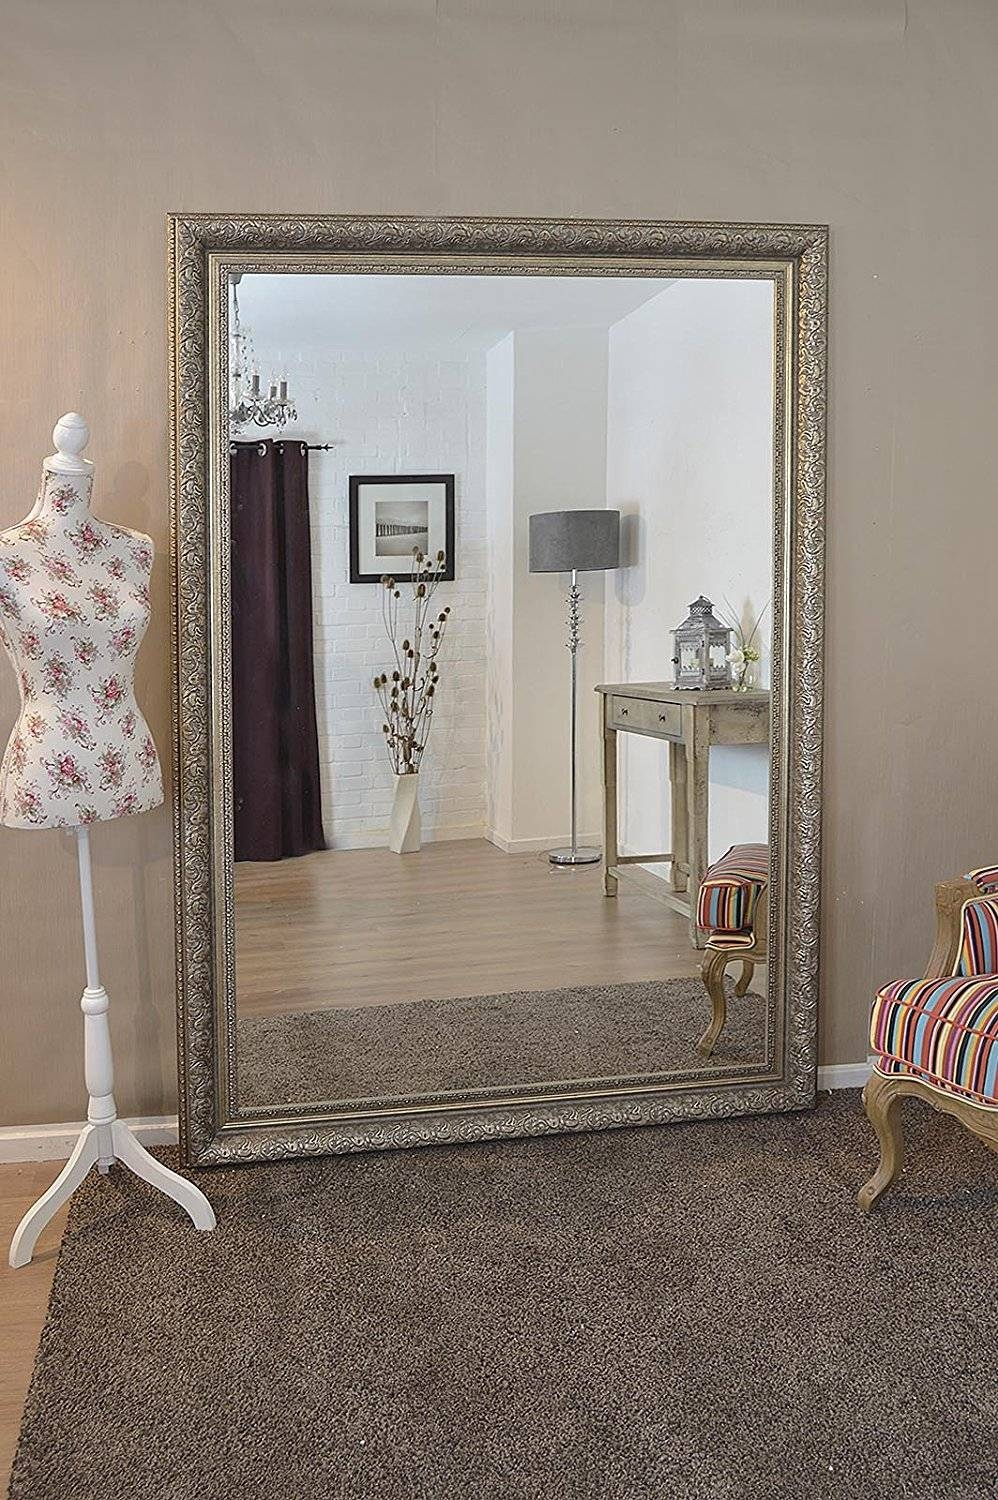 Large Silver Wall Mirror 57 Nice Decorating With Large Ornate Wall within Extra Large Ornate Mirrors (Image 18 of 25)